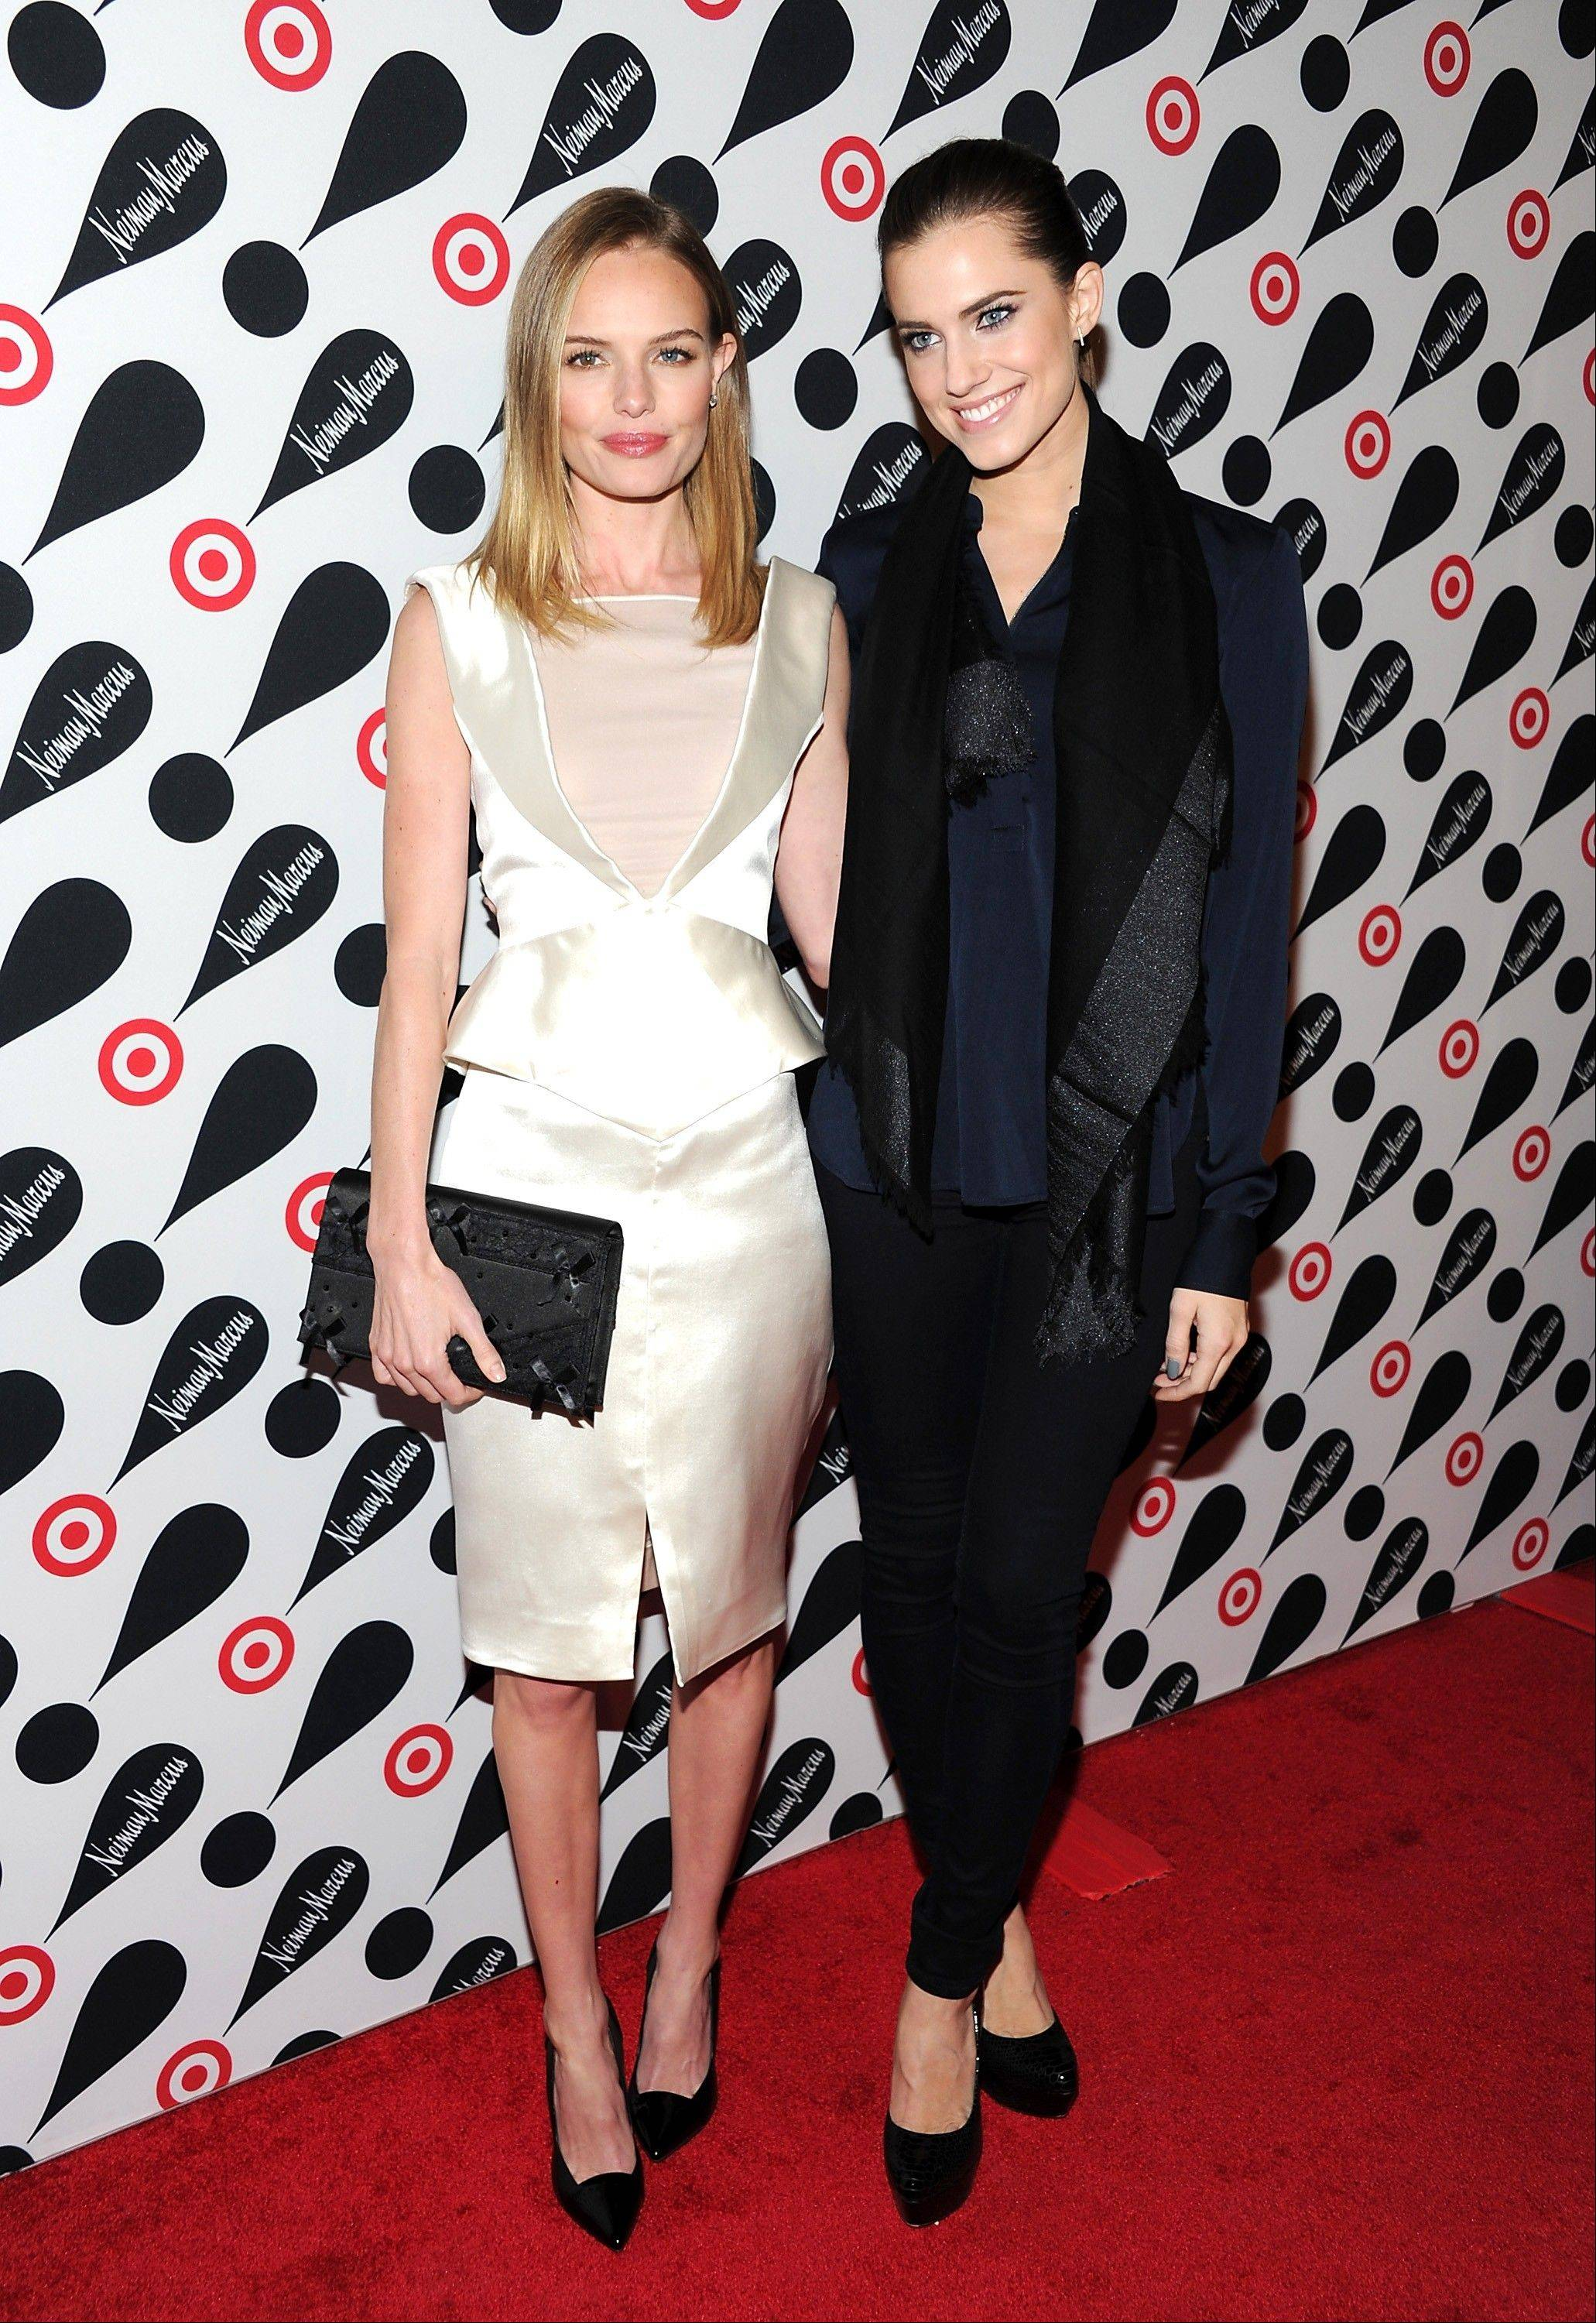 Actresses Kate Bosworth, left, and Allison Williams attend the Target and Neiman Marcus holiday collection launch in New York.